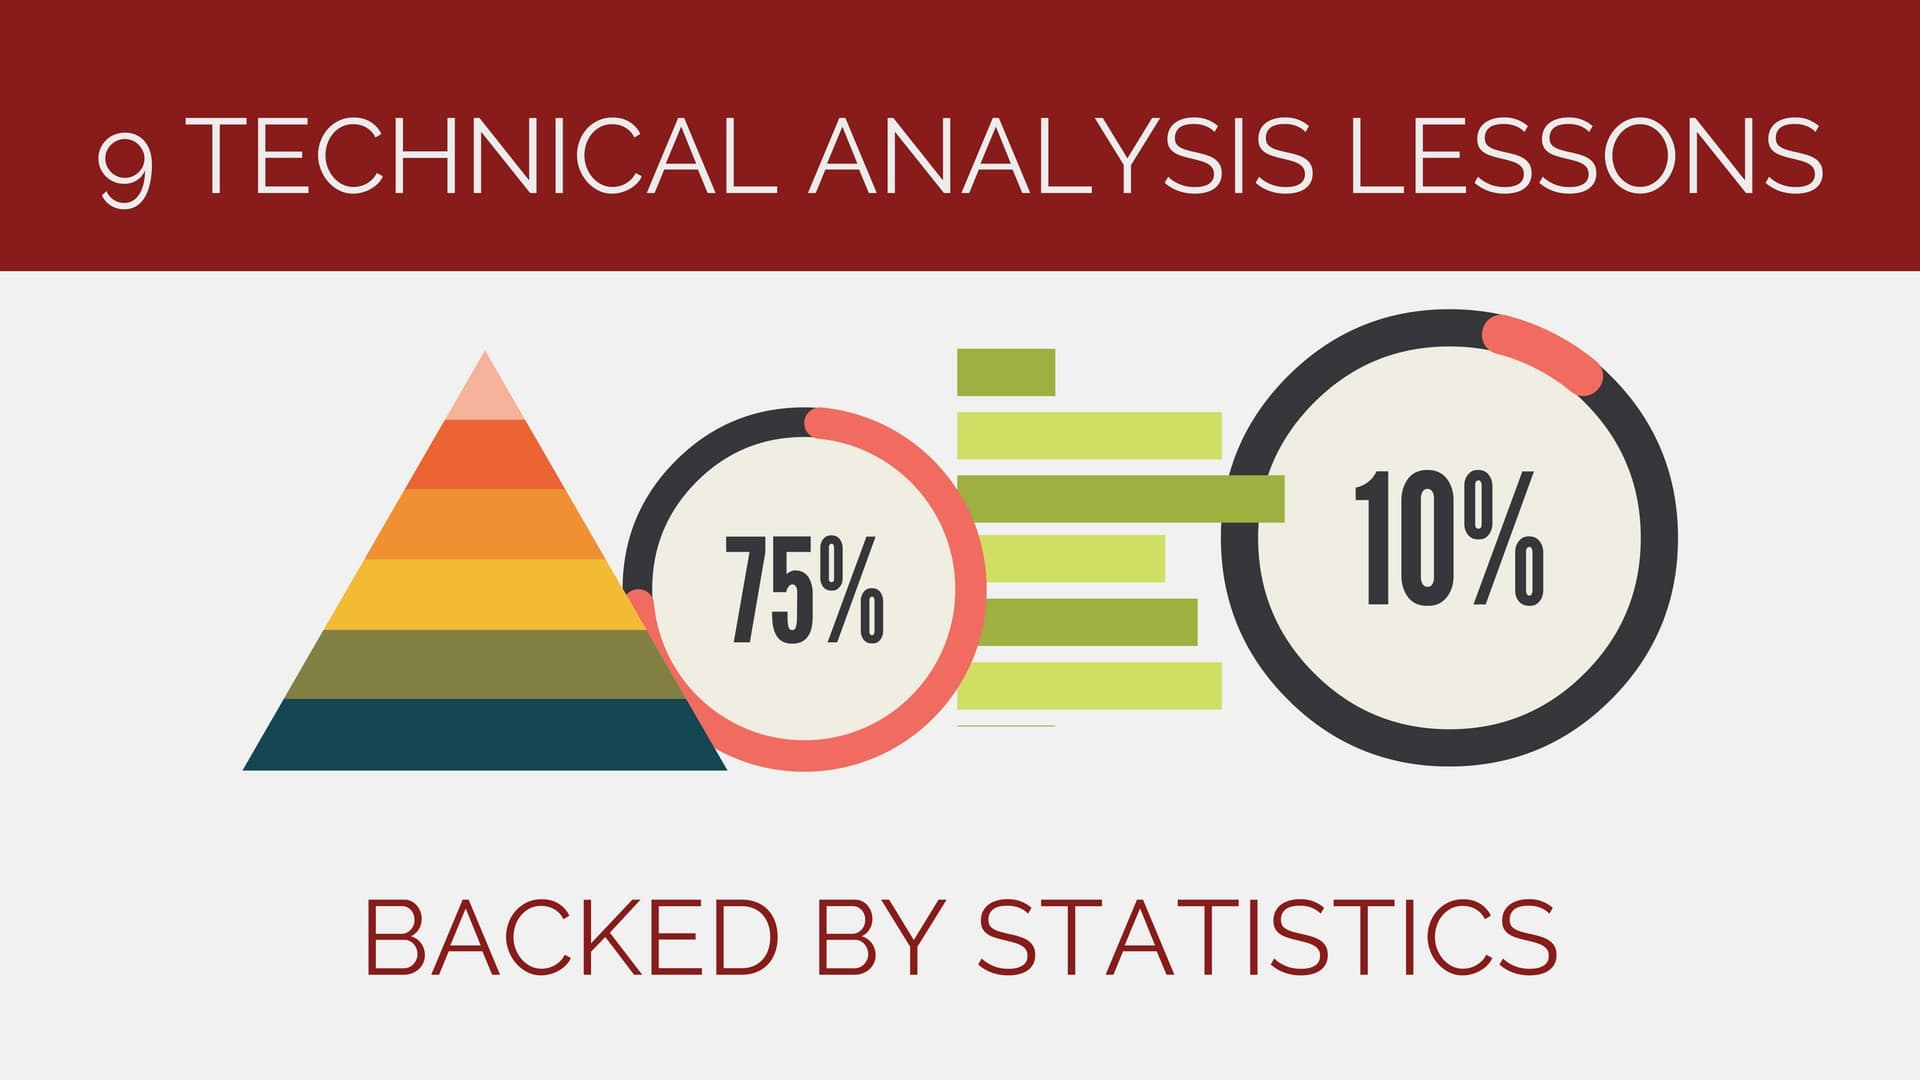 9 Technical Analysis Lessons Backed By Statistics